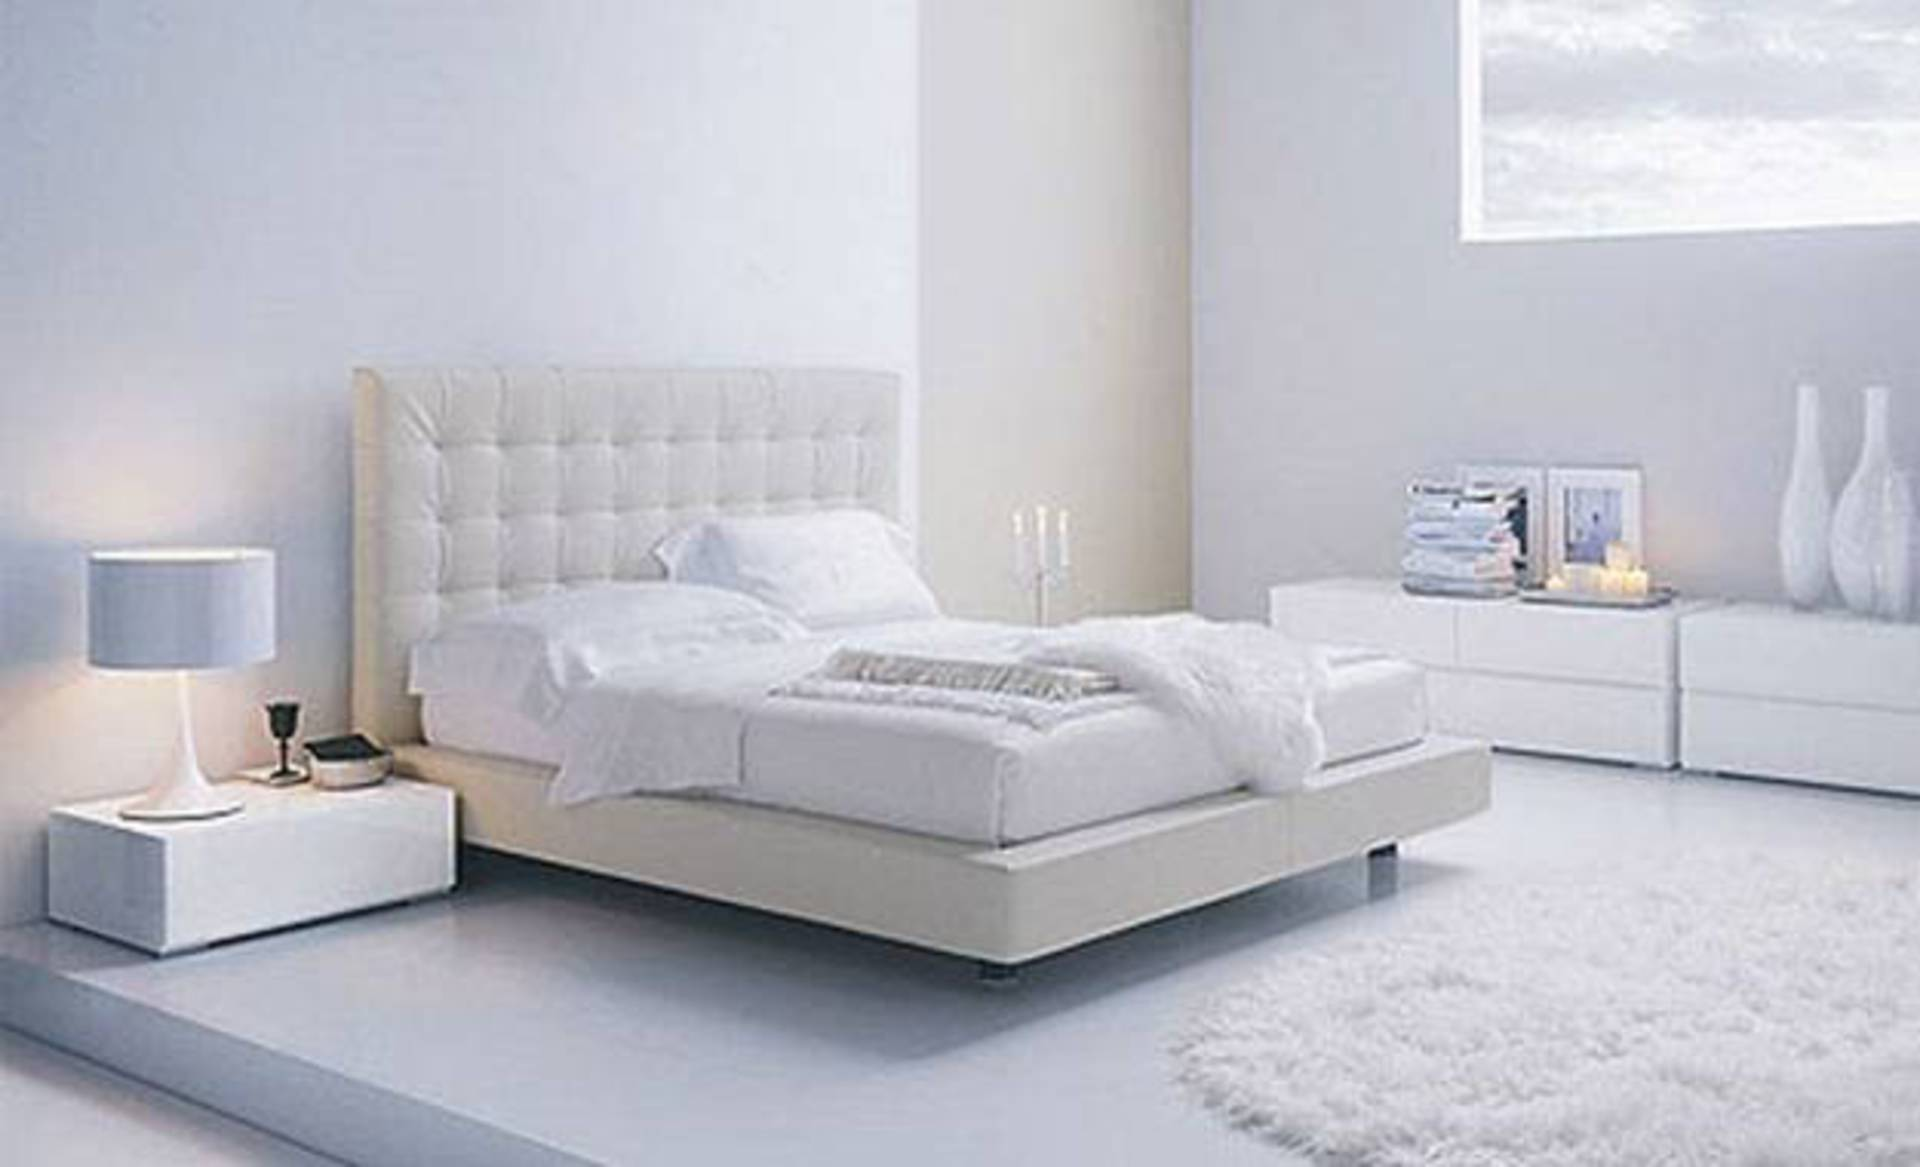 Bedroom Design Ideas: Contemporary White Bedrooms - Home Reviews